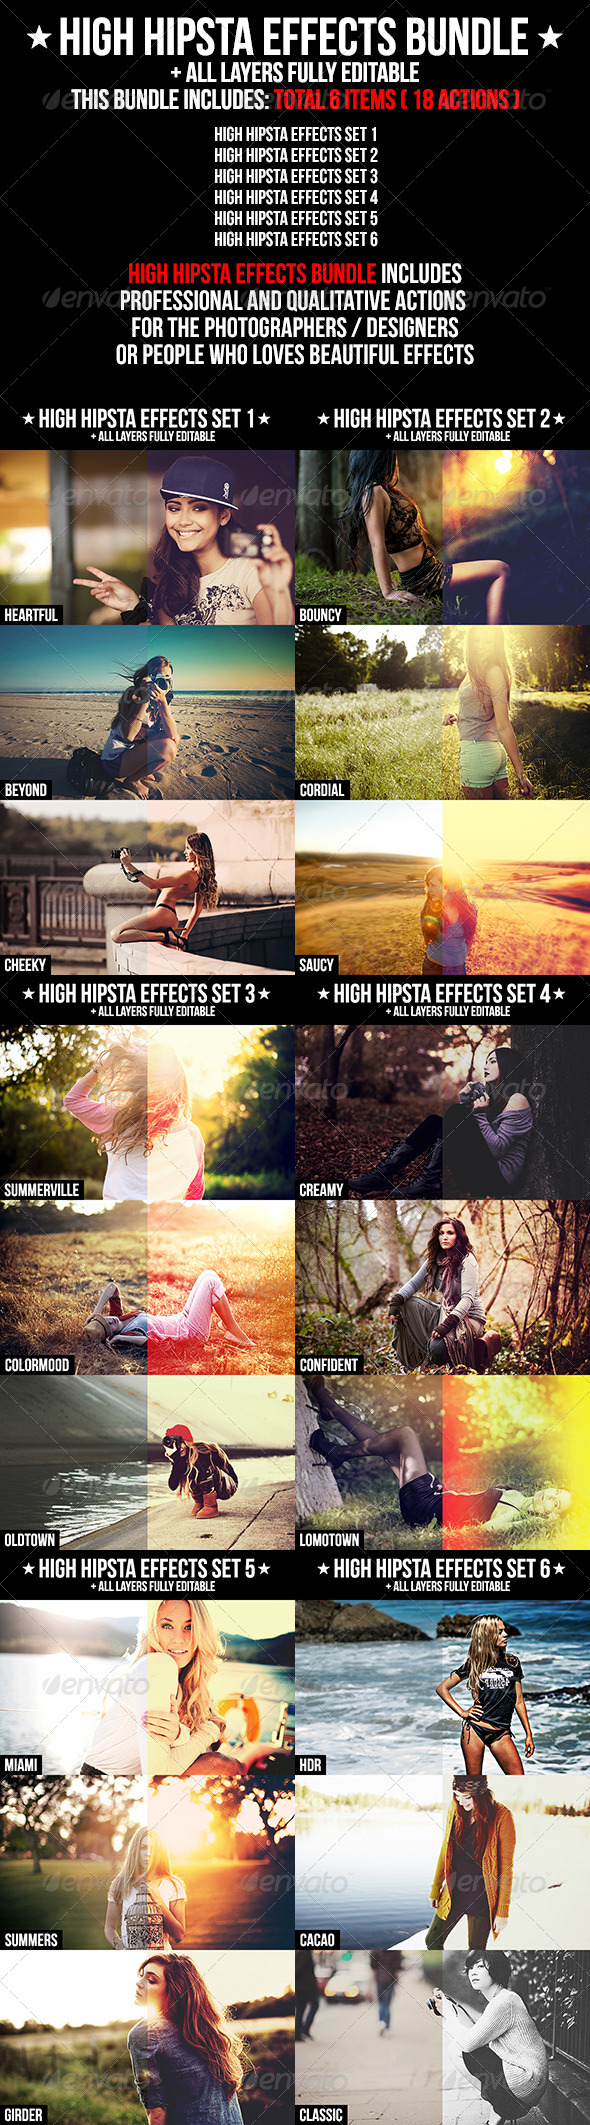 GraphicRiver High Hipsta Effects Bundle 4297420